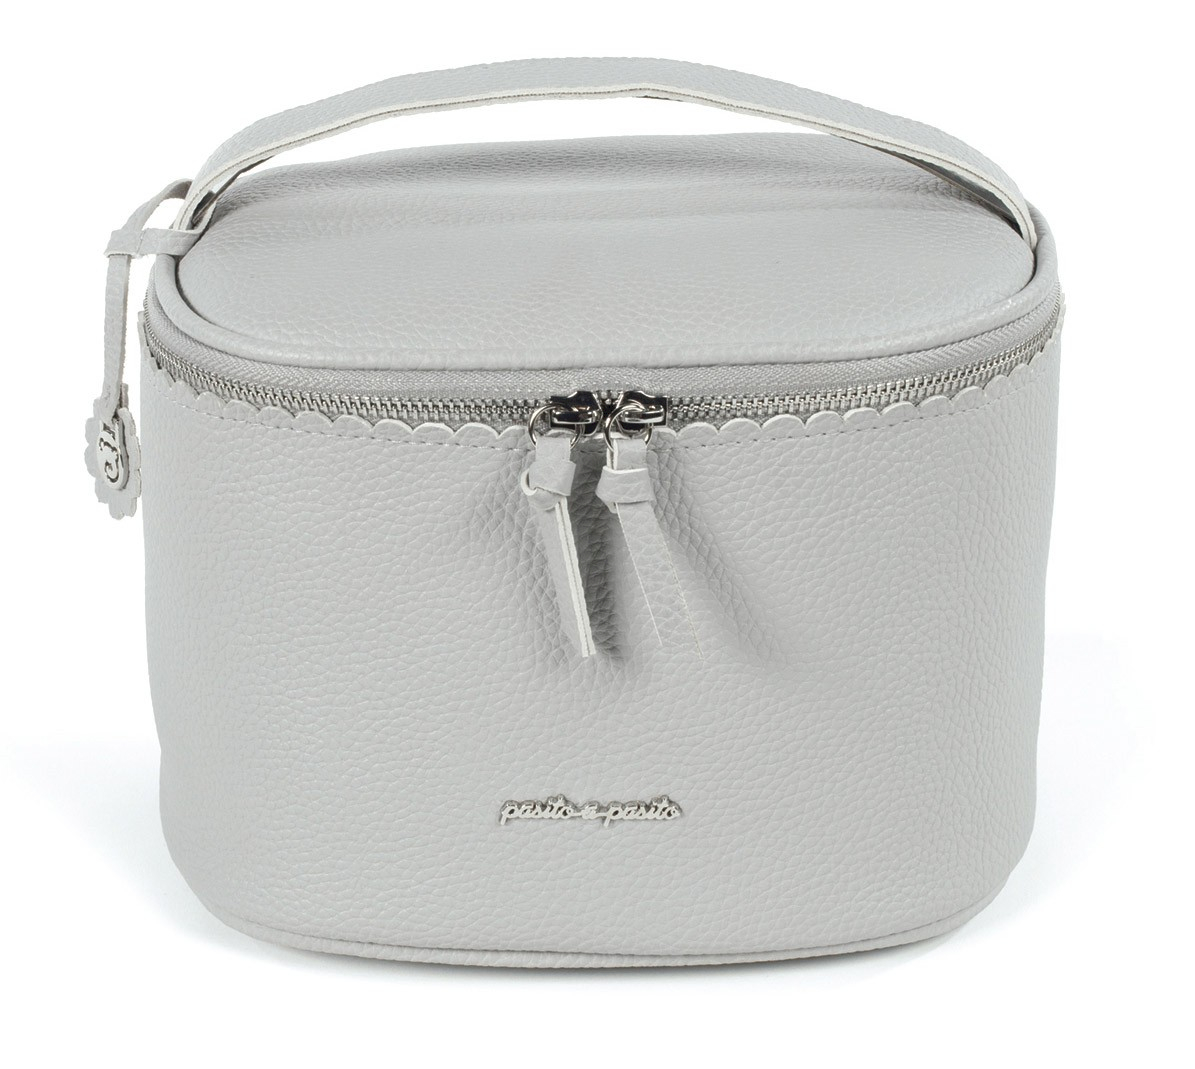 Pasito a Pasito Vanity-Case Biscuit Gris